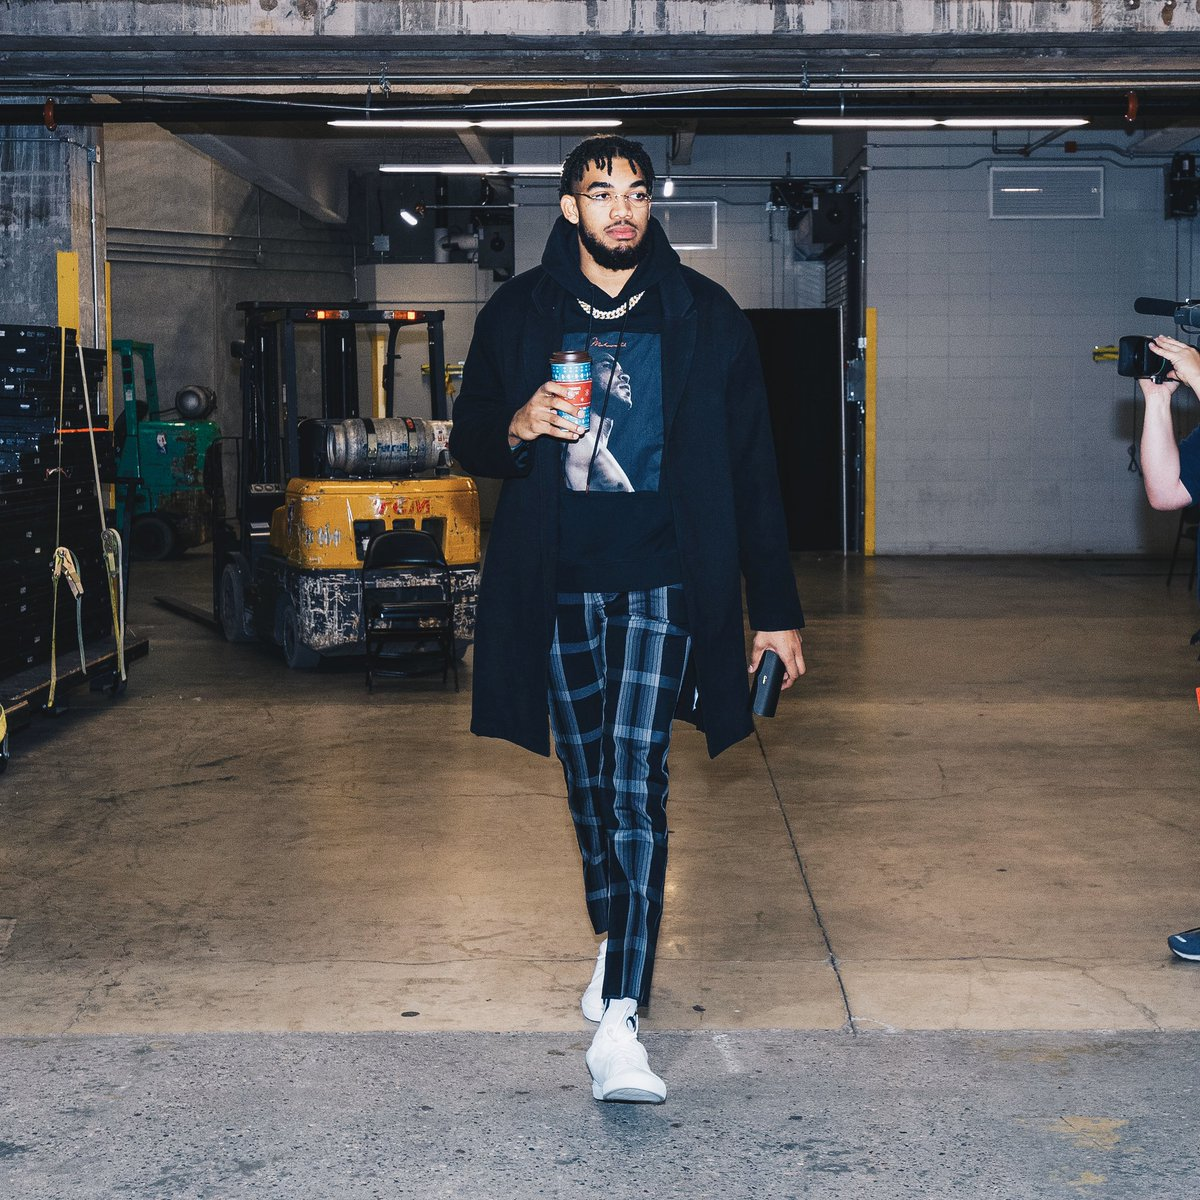 Caribou fueling @KarlTowns tonight for the big game! Good luck to our Minnesota @Timberwolves 🙌🏀 #FuelUp